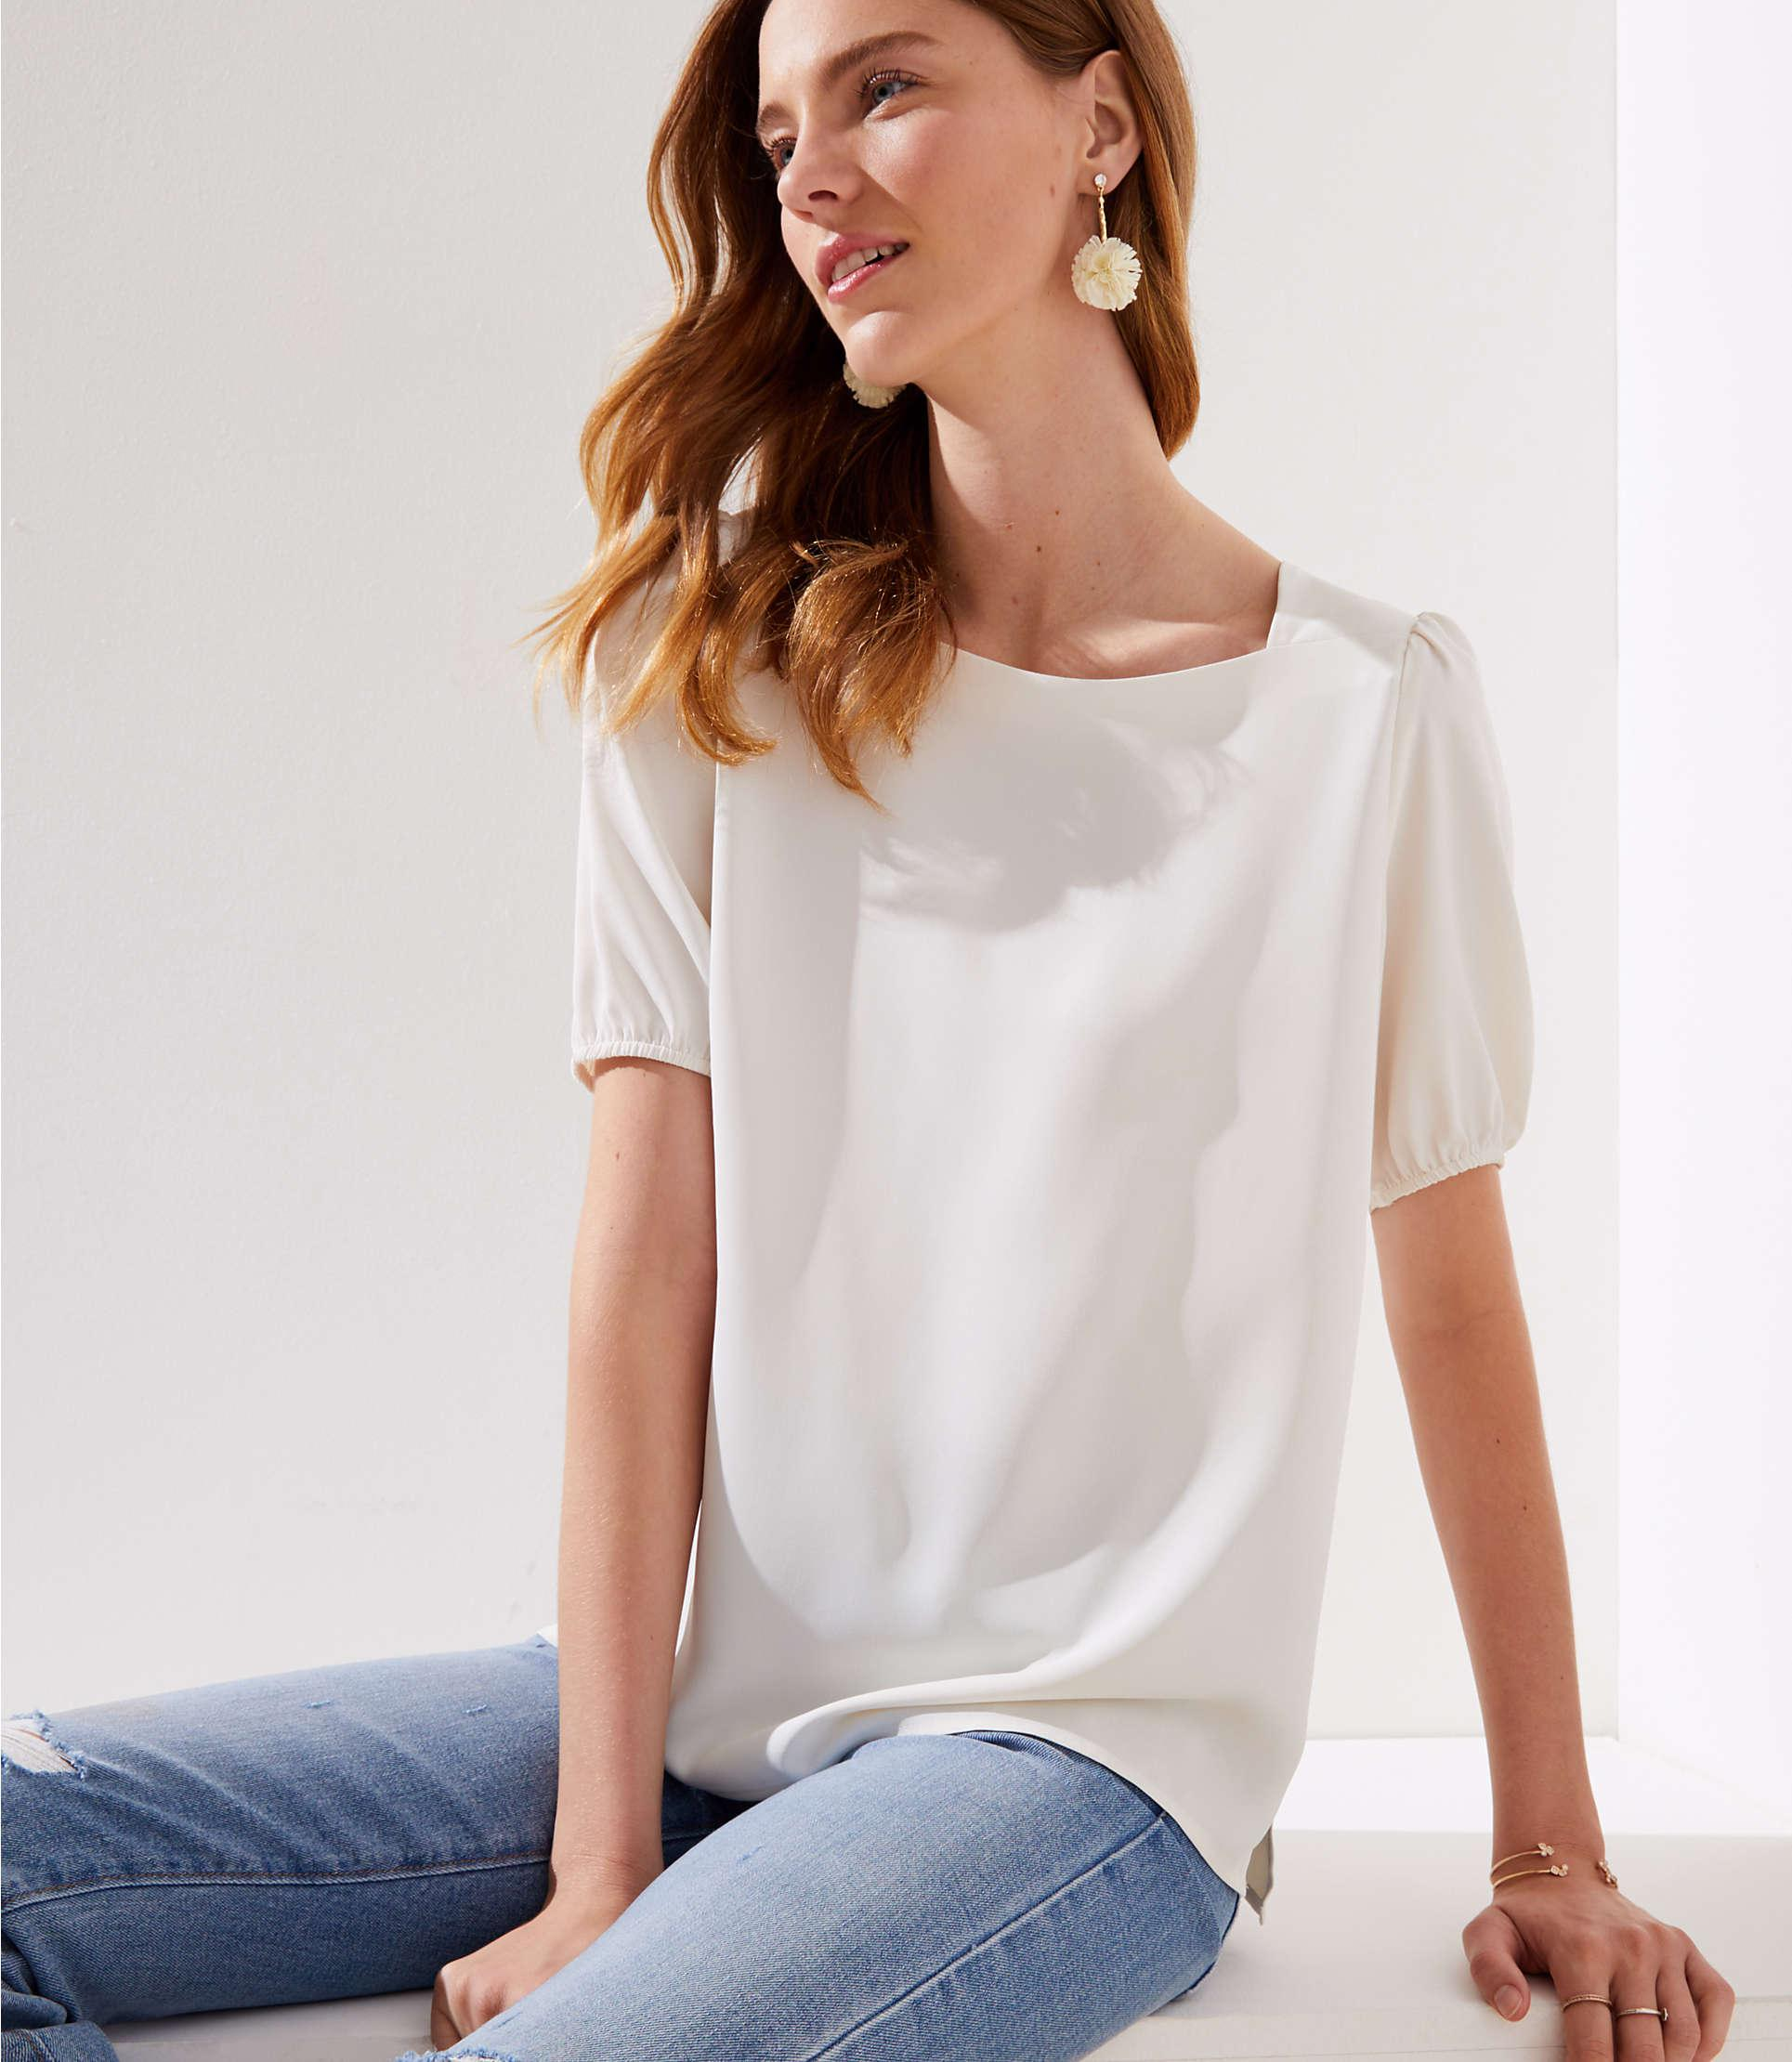 a91abe98683c42 LOFT Square Neck Blouse in White - Lyst